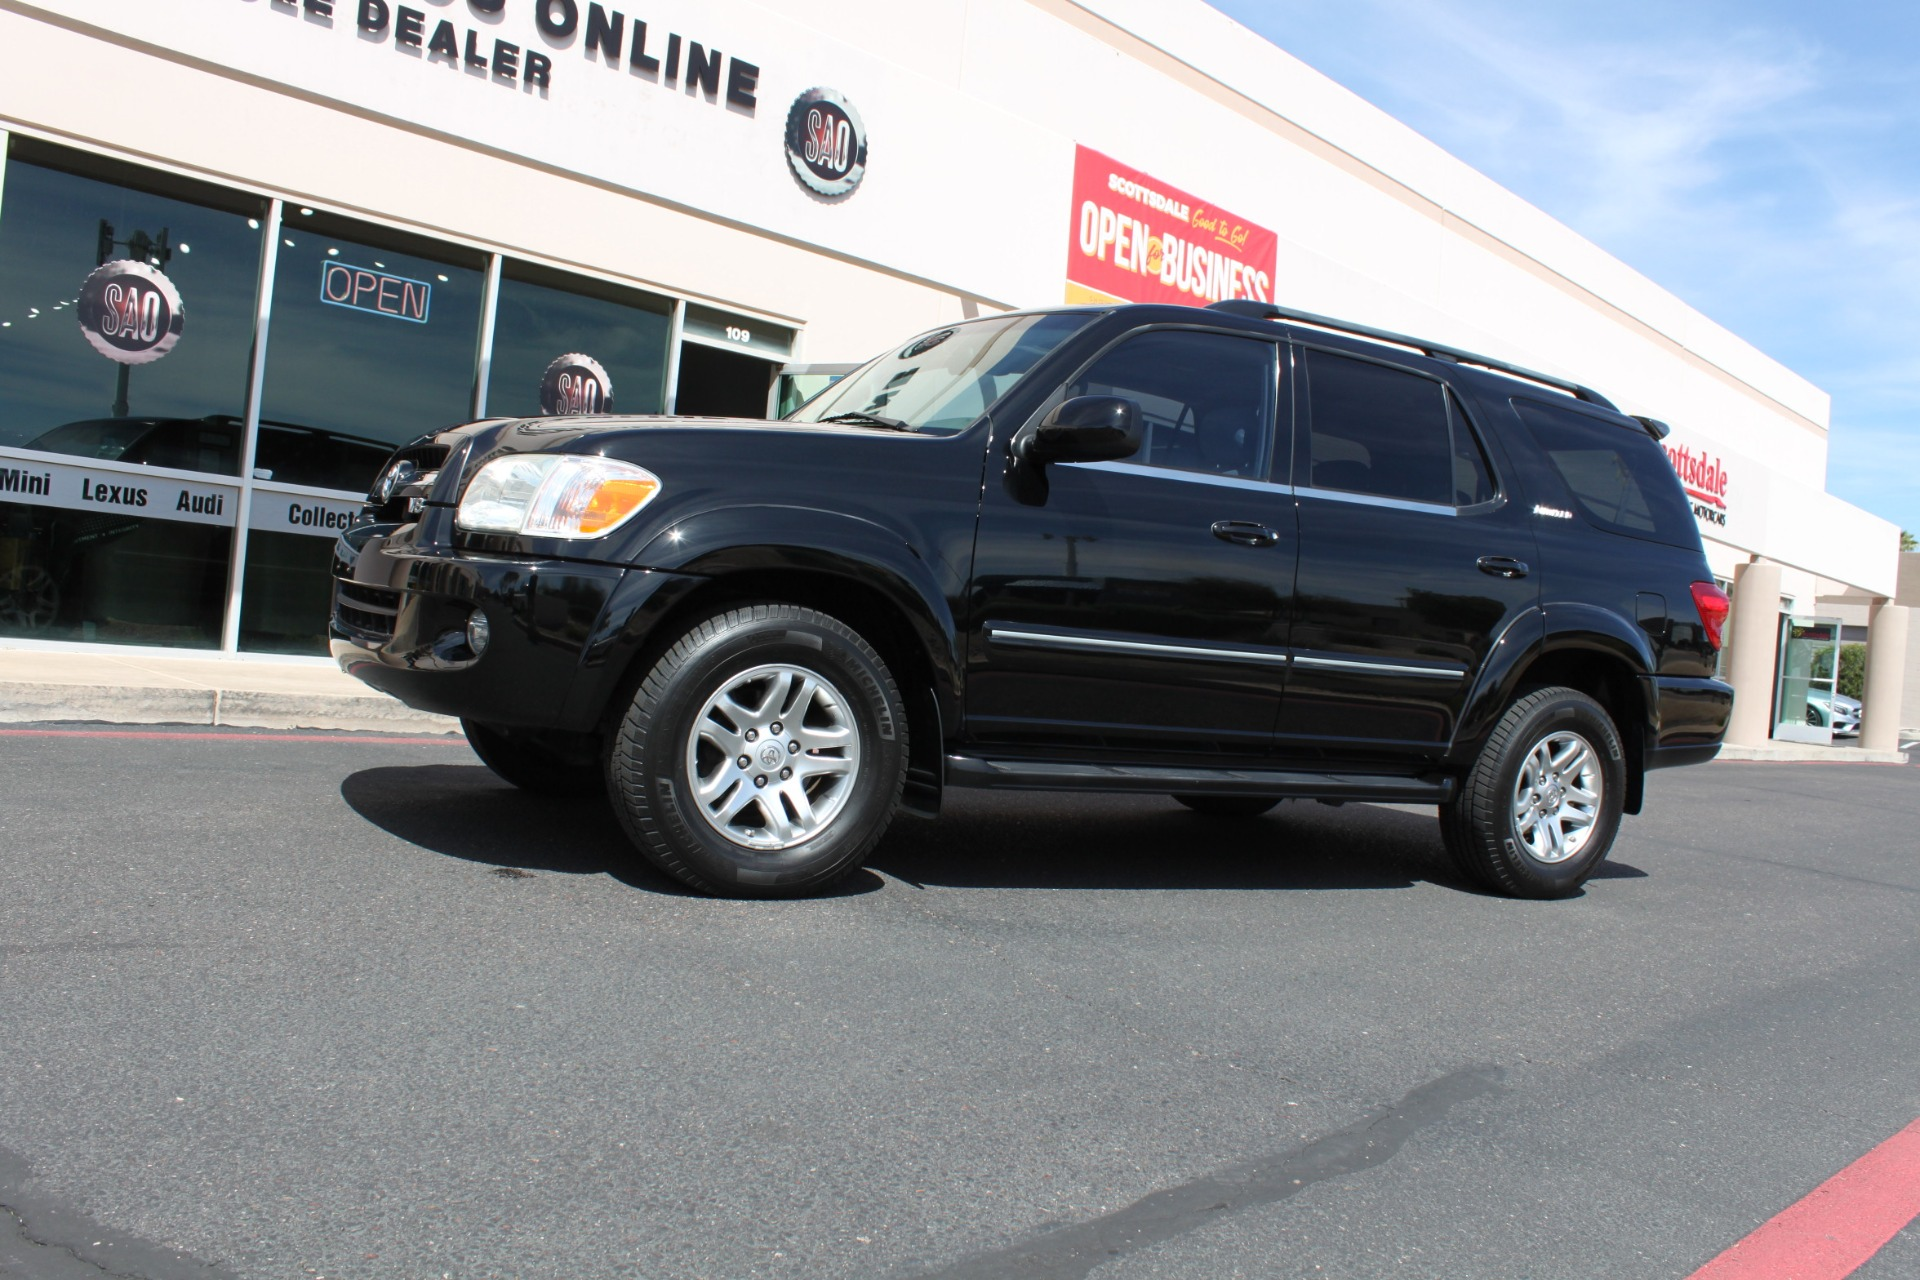 Used-2005-Toyota-Sequoia-Limited-Chevelle